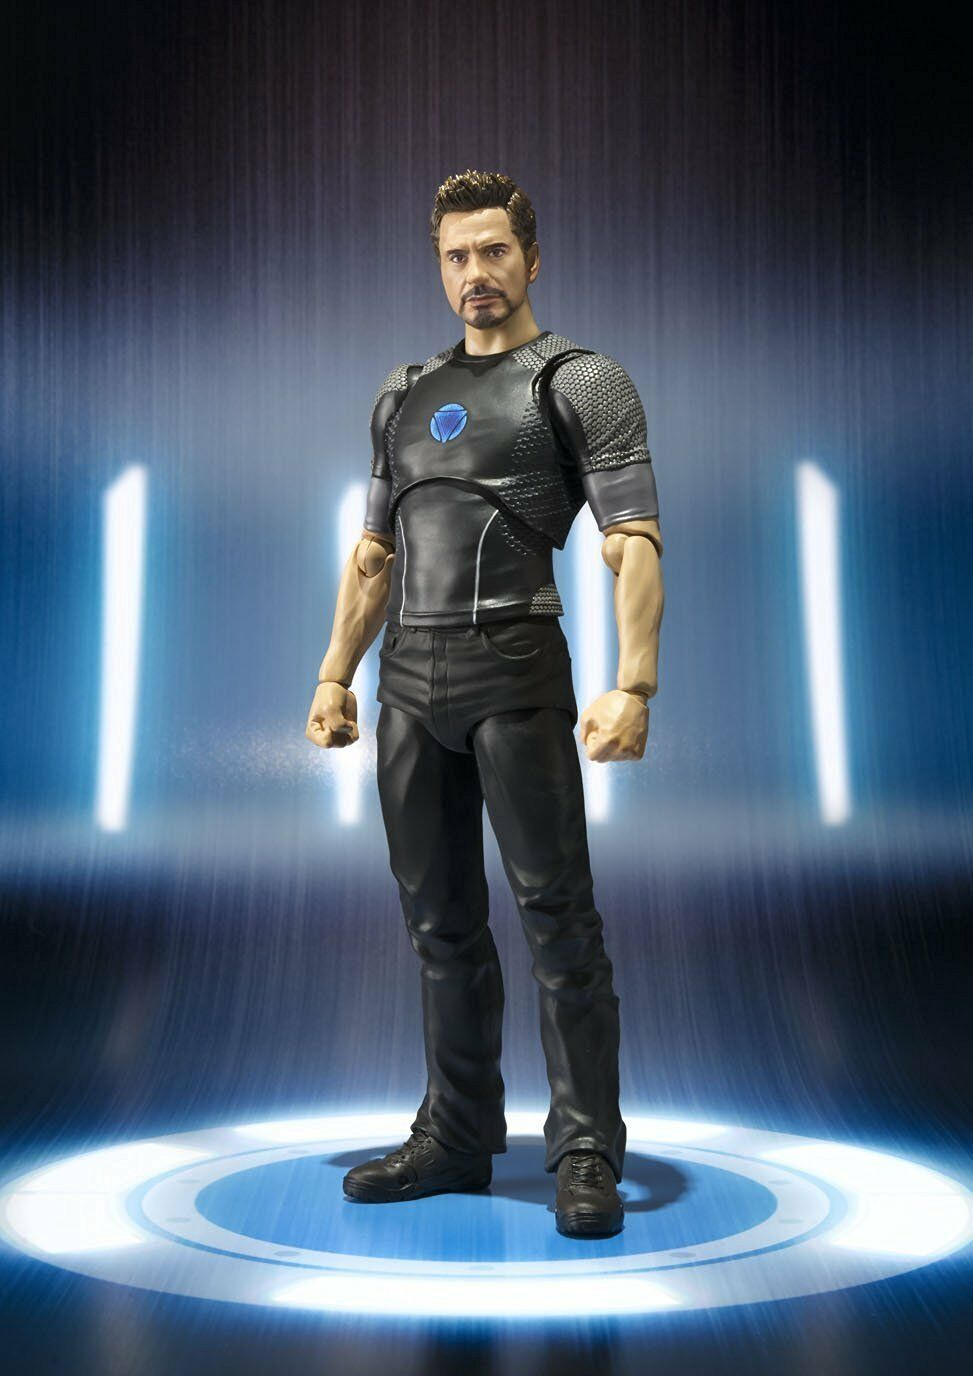 S.H.Figuarts Iron Man 3 Tony Stark Normal ver. Marvel Action Figure Re-issue ver